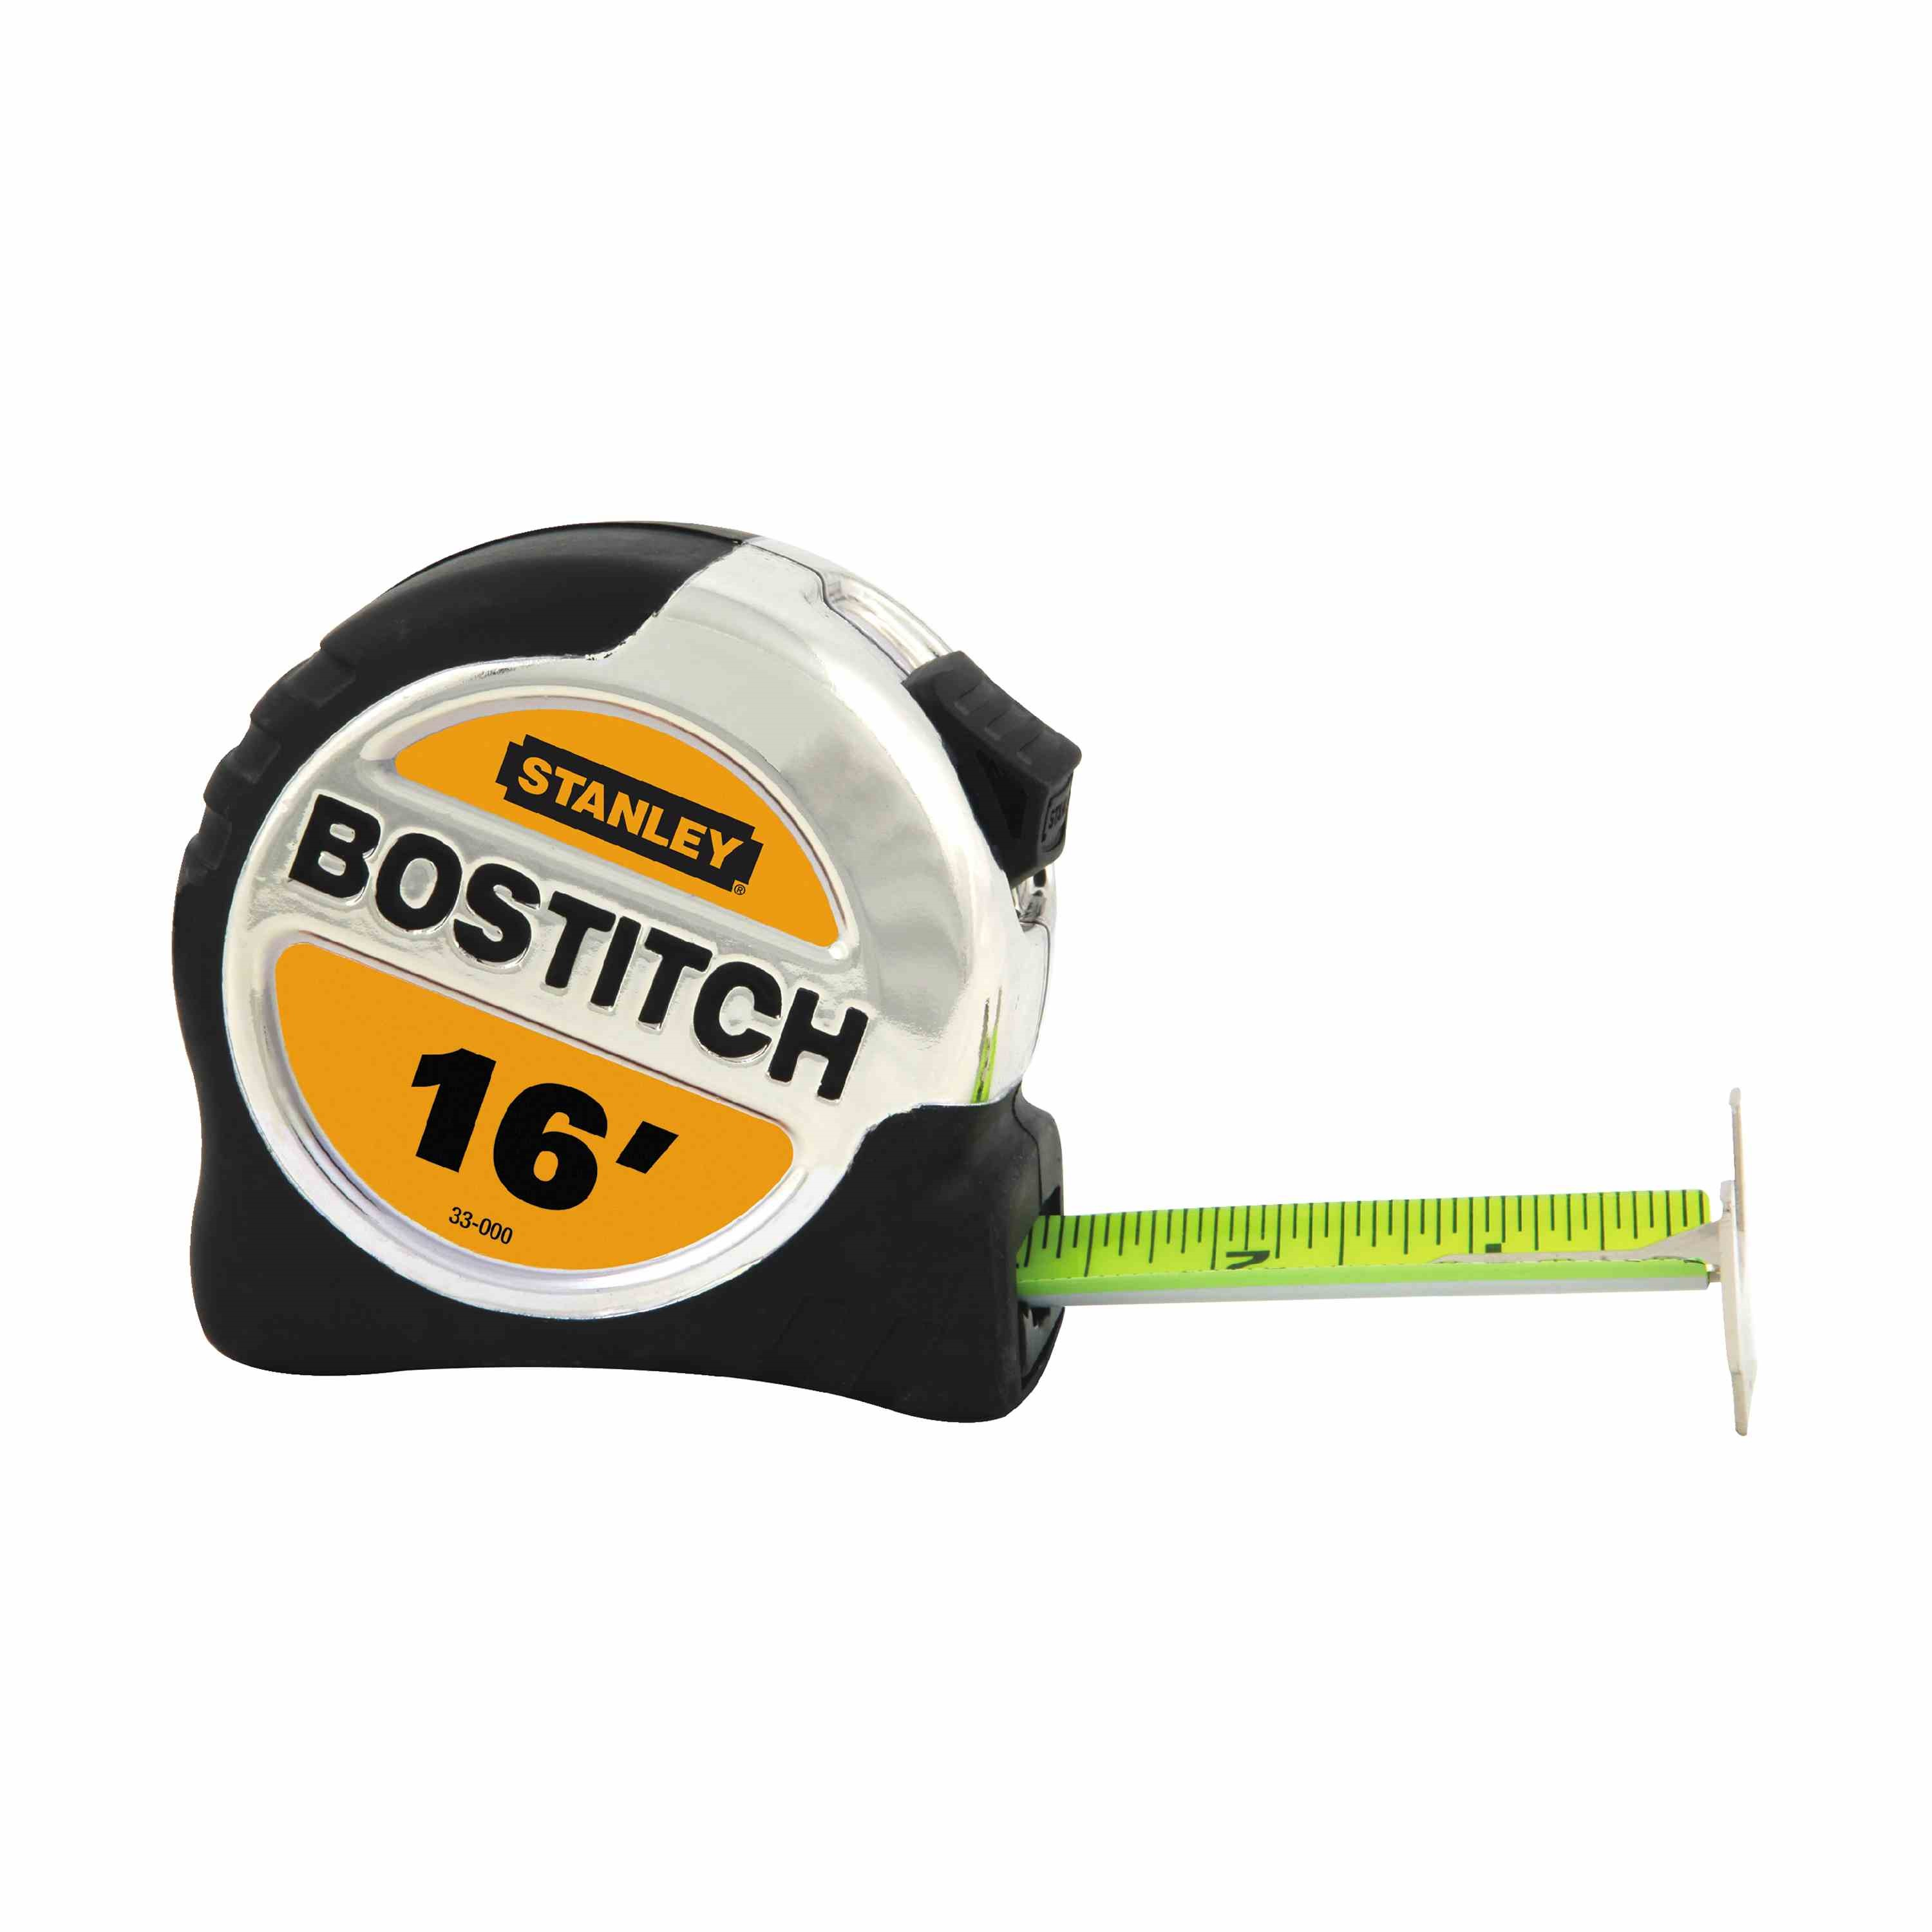 Bostitch - 114 in x 16 ft BiMaterial Tape Rule with BladeArmor - 33-000